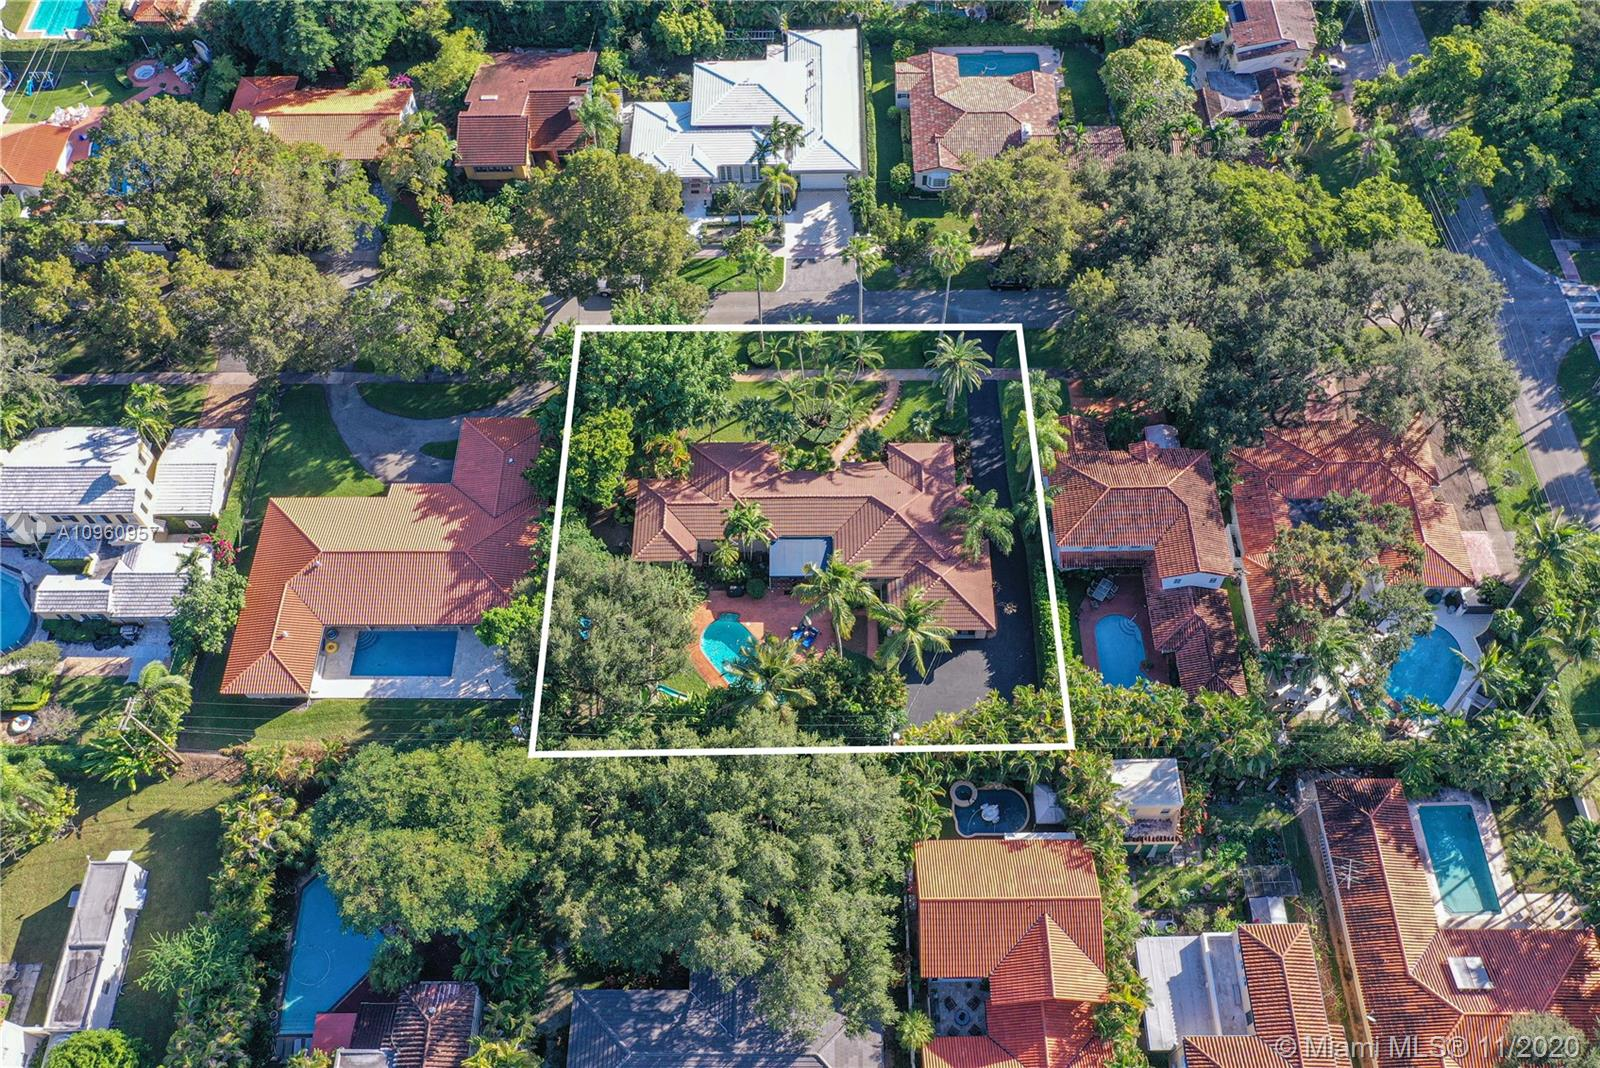 1037 Malaga Ave, Coral Gables, Florida 33134, 3 Bedrooms Bedrooms, ,4 BathroomsBathrooms,Residential,For Sale,1037 Malaga Ave,A10960957